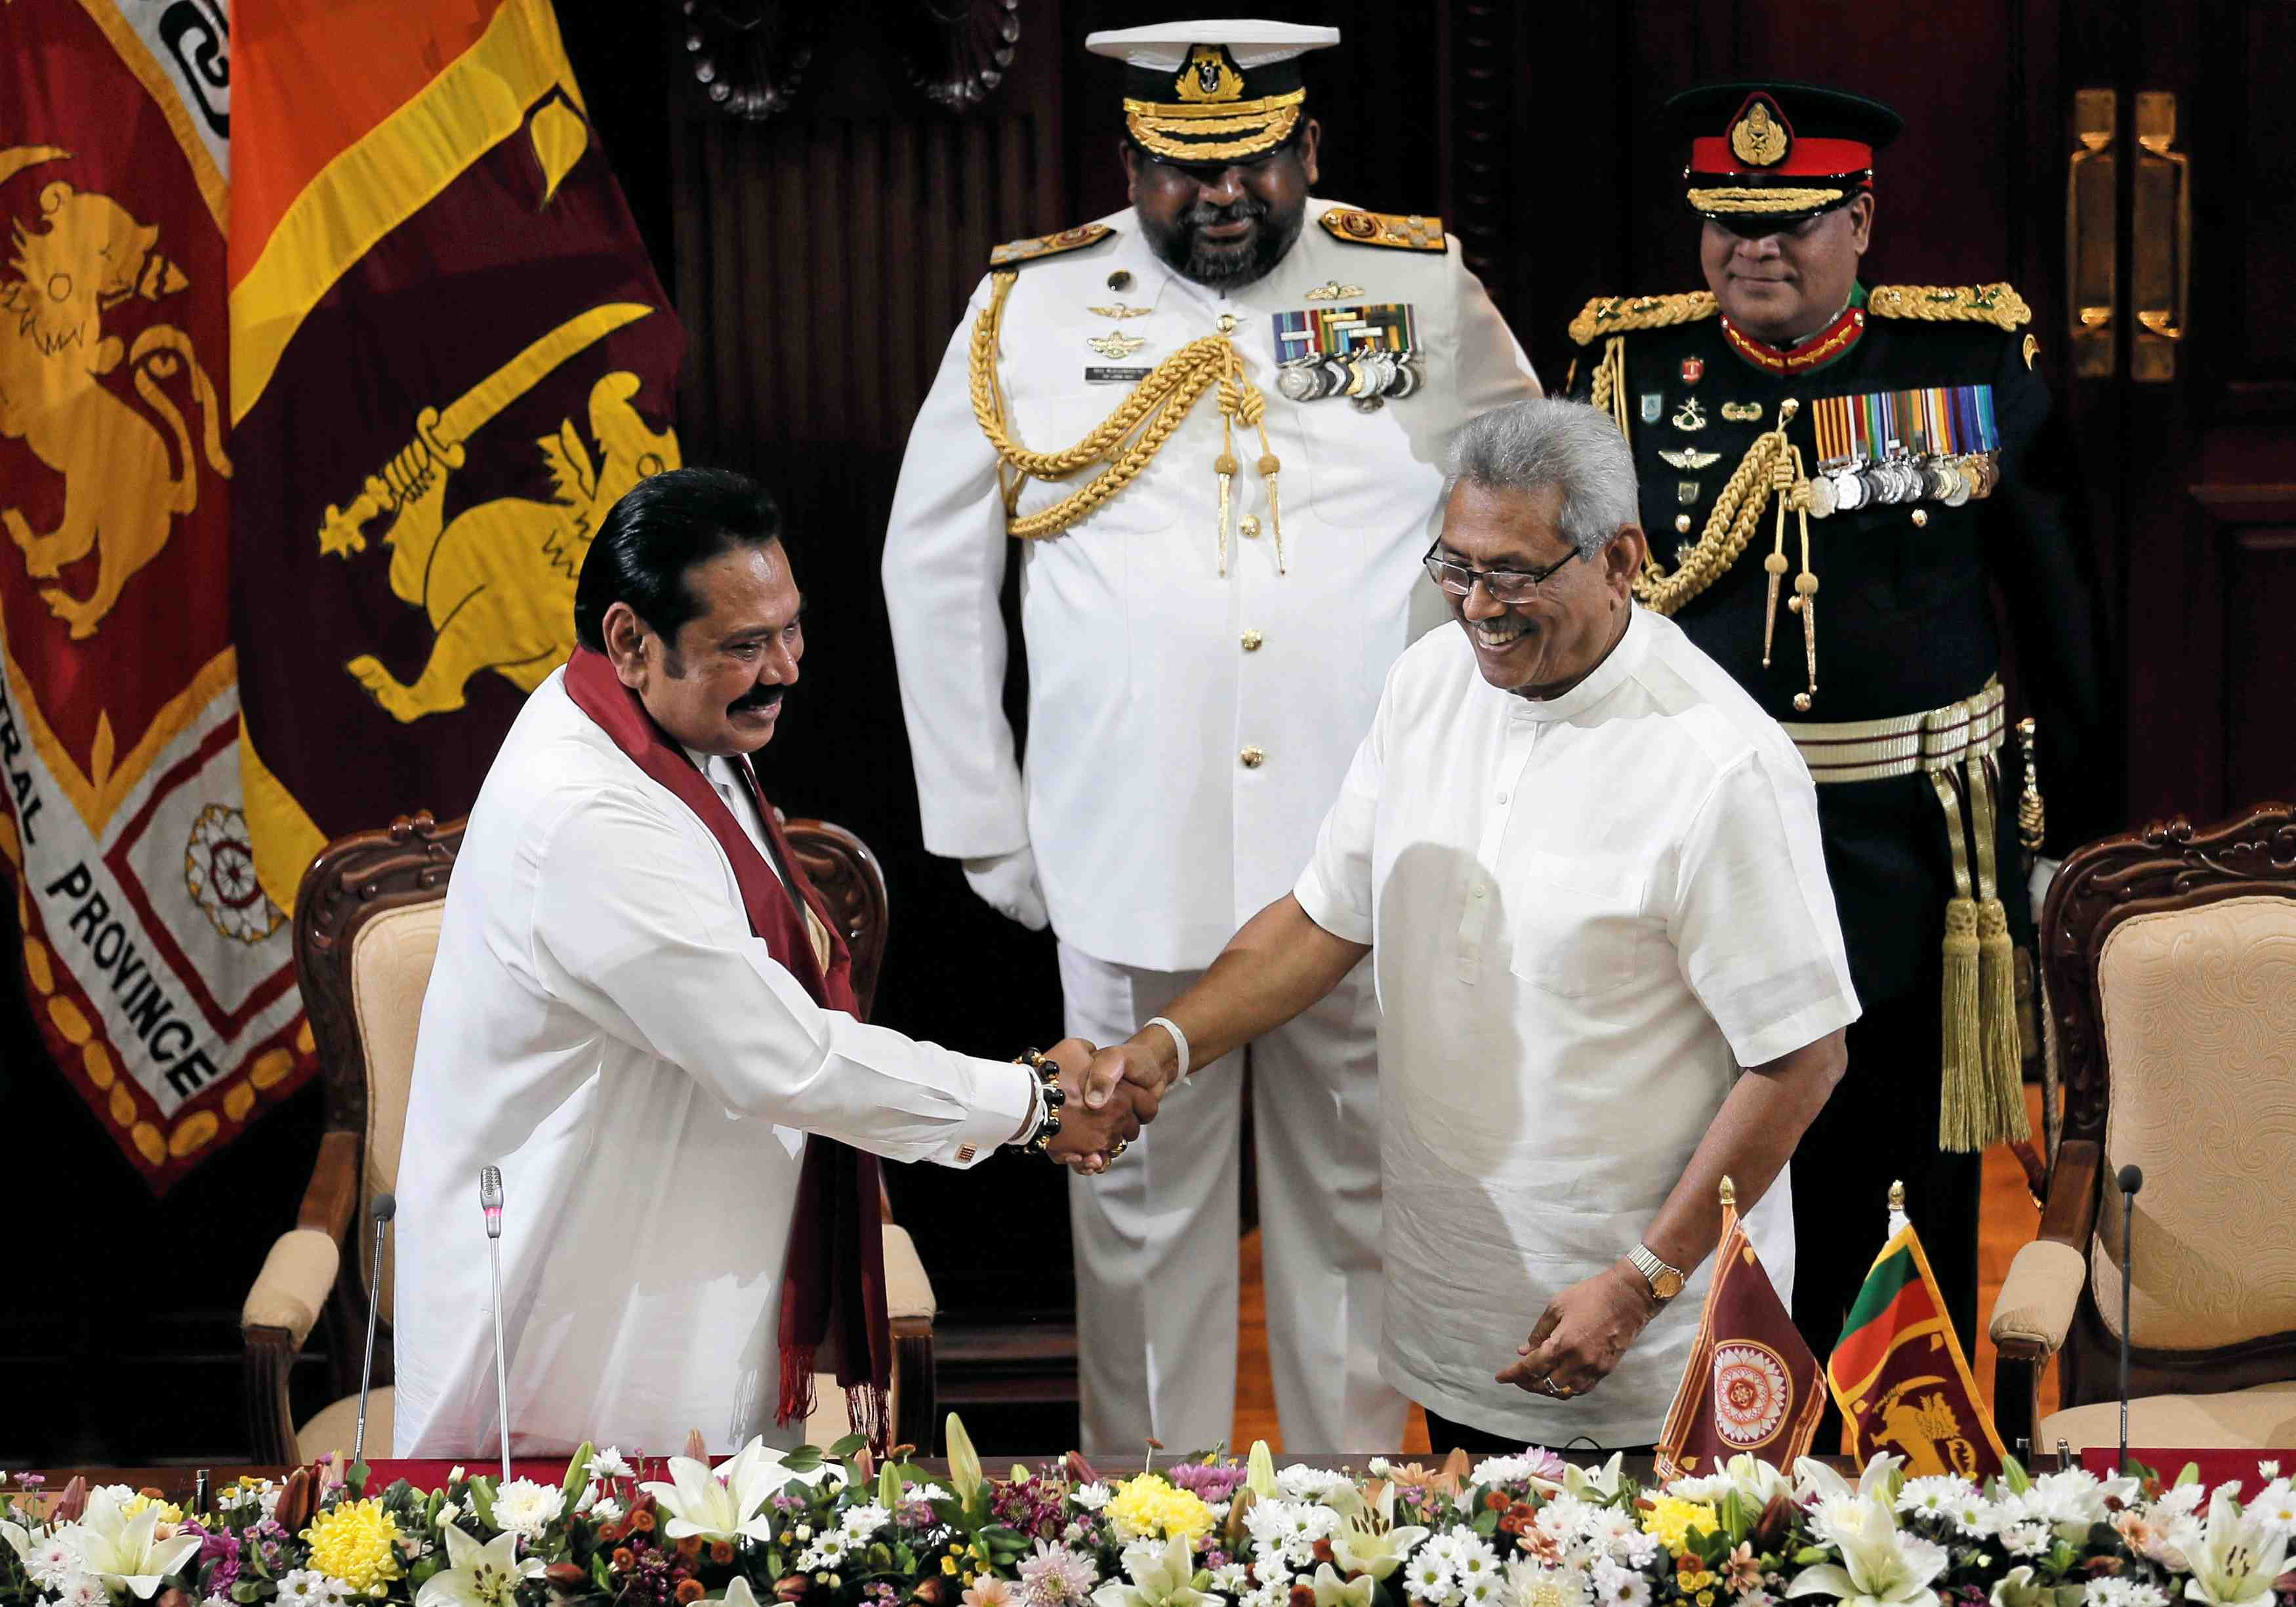 Sri Lanka's President Gotabaya Rajapaksa and his brother and former leader Mahinda Rajapaksa, who has appointed as the new Prime Minister, shake hands during the swearing in ceremony in Colombo